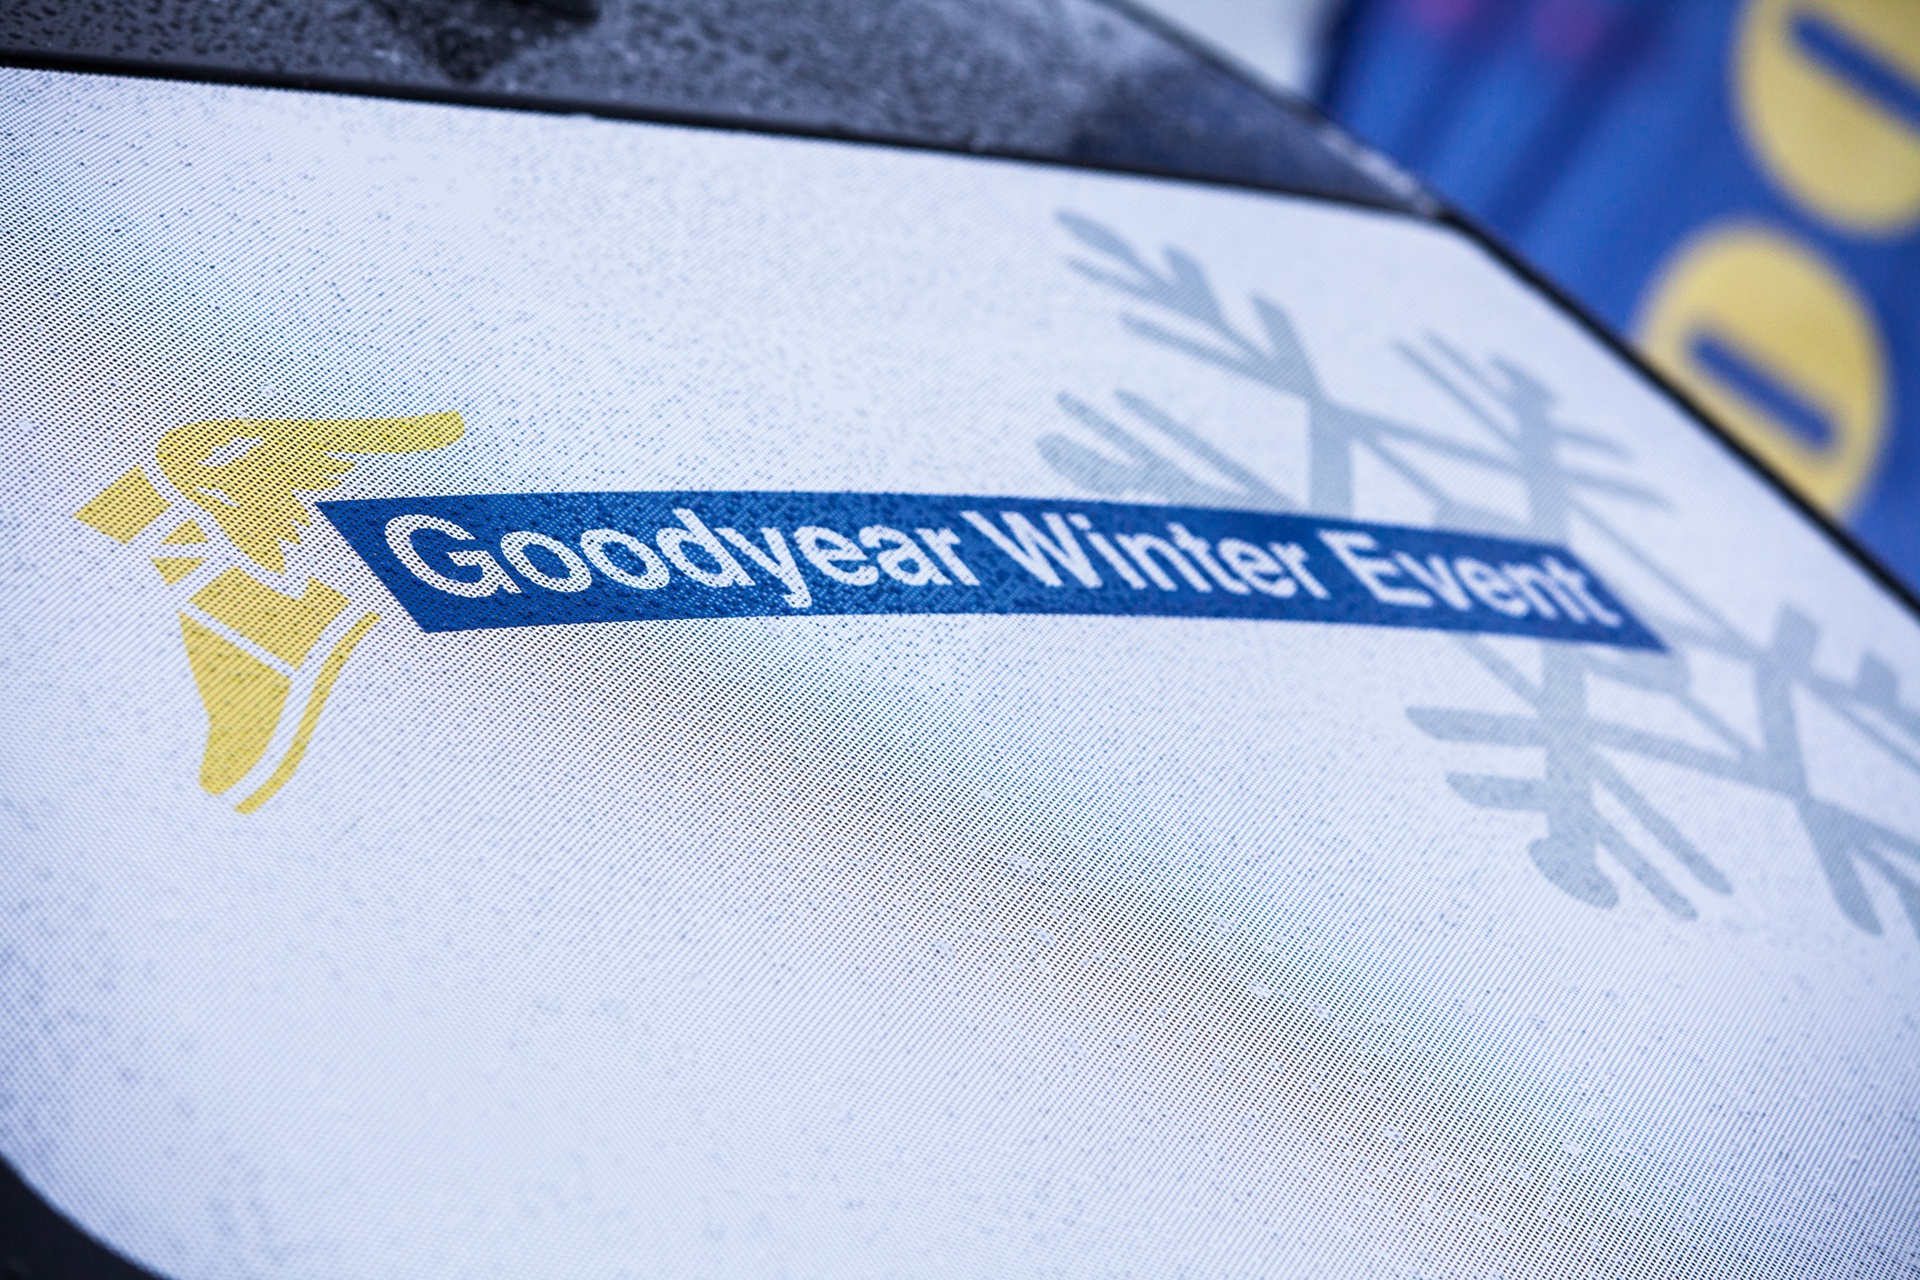 Goodyear Winter Press Event